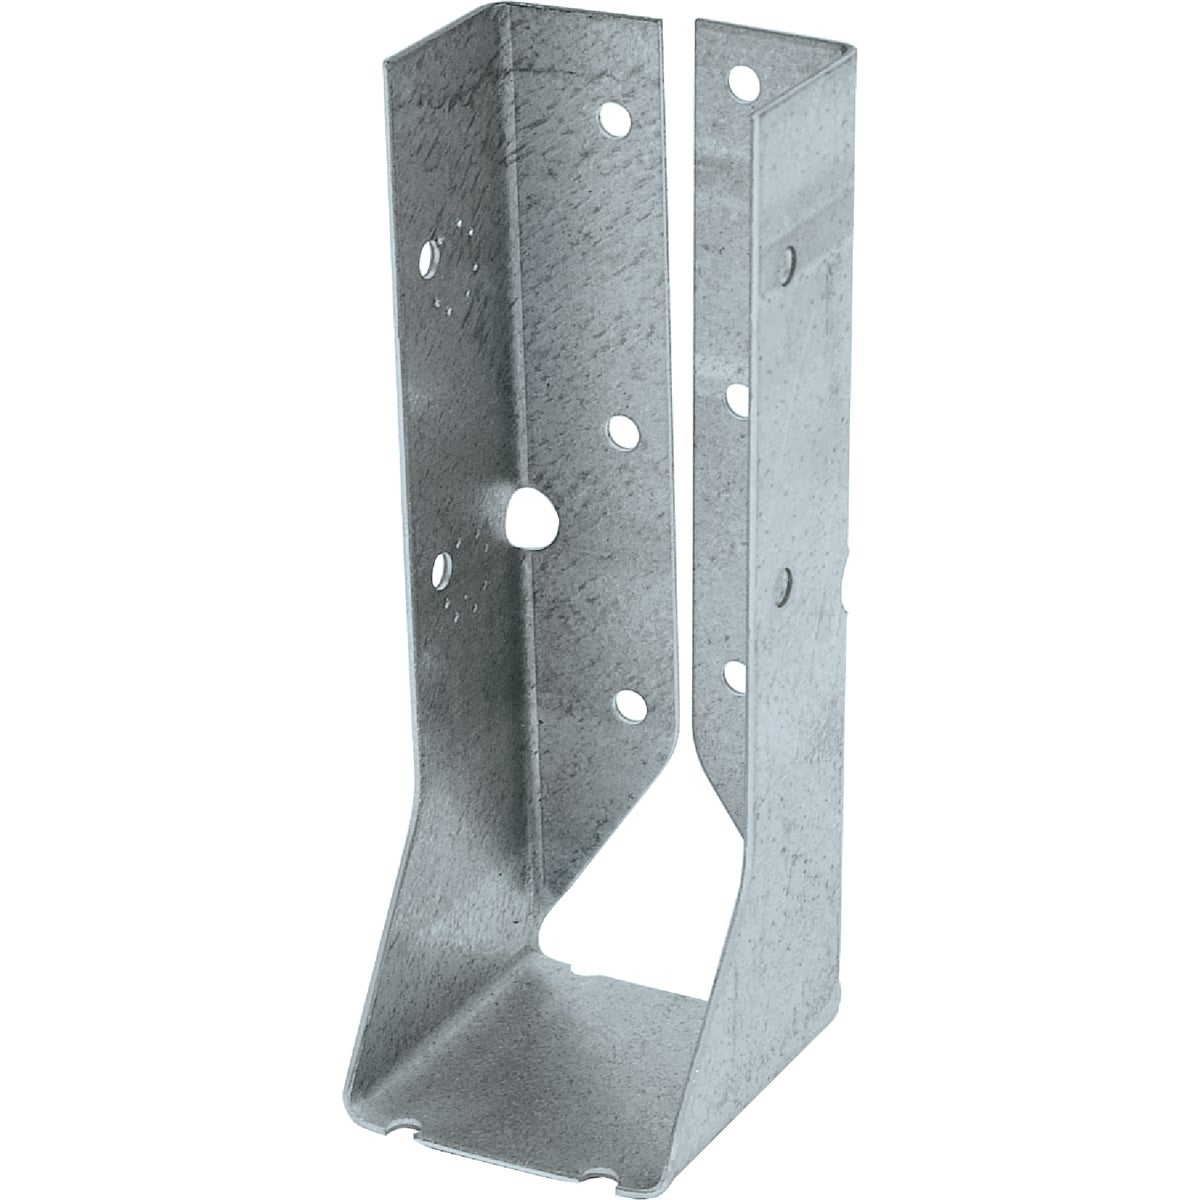 CONCEALED HANGER Z-MAX - LUC26Z by Simpson Strong Tie